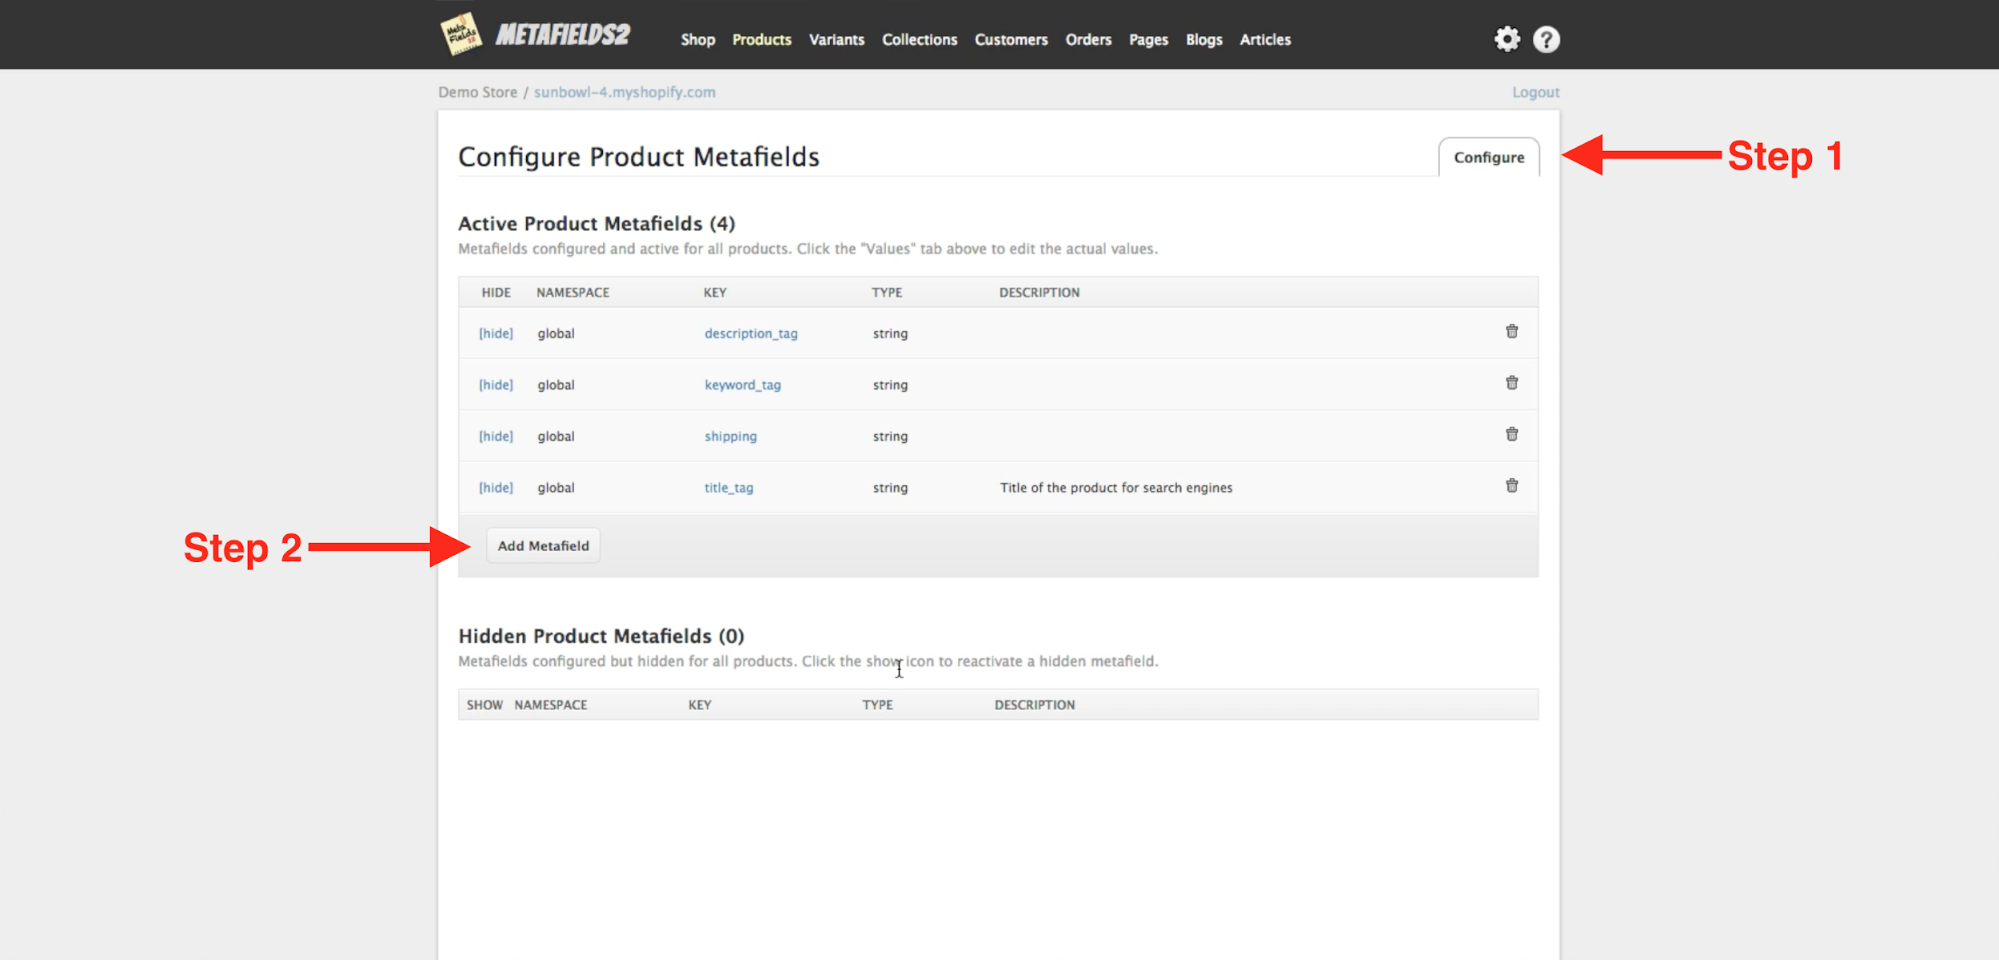 Merchant is setting up new metafields within the Metafields2 app from the Shopify app store